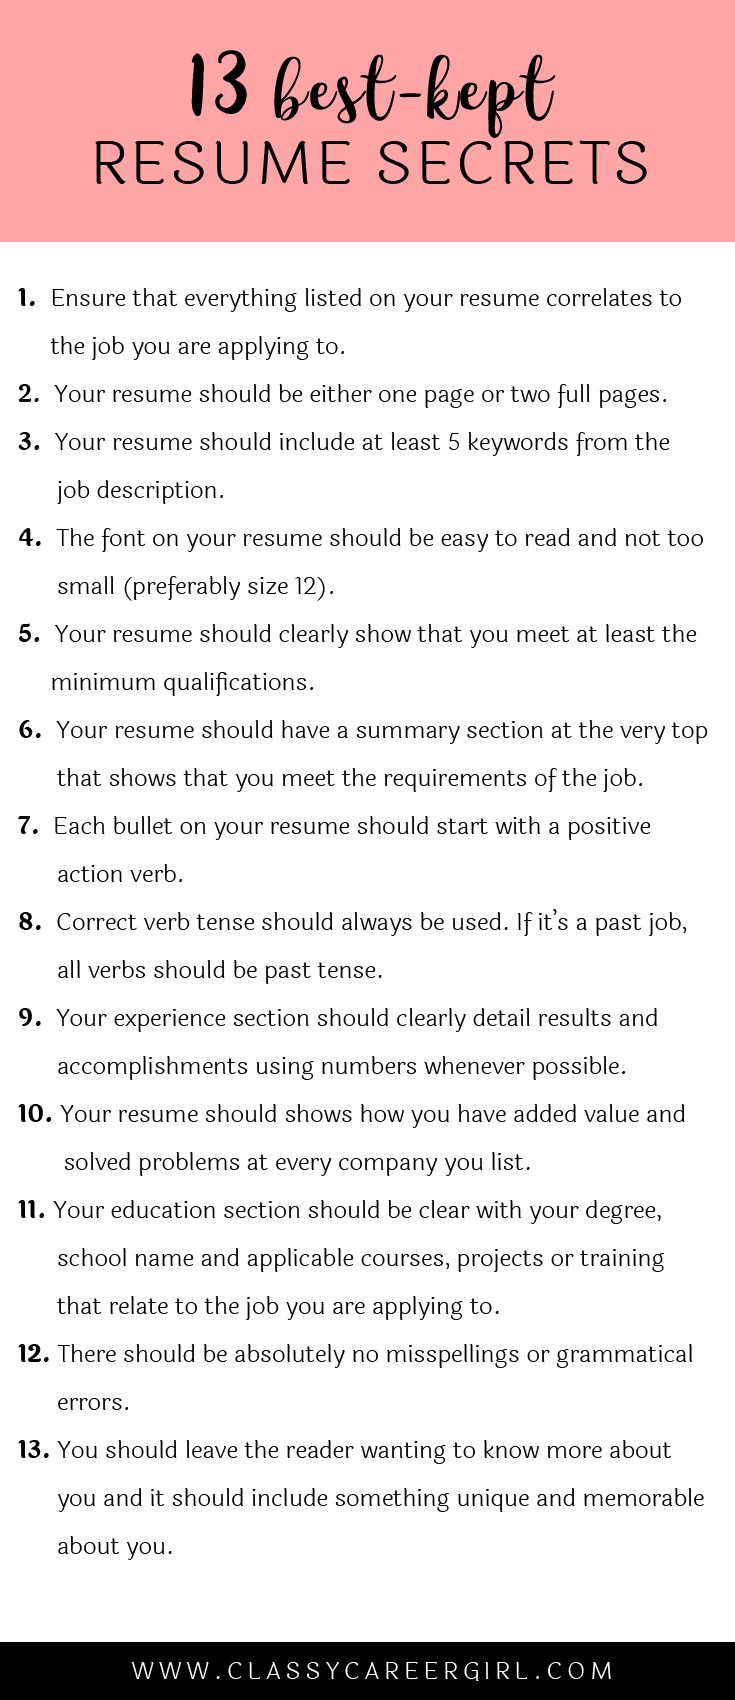 Opposenewapstandardsus  Unique  Ideas About Resume On Pinterest  Cv Format Resume Cv And  With Lovable Some Hiring Managers Will Toss Your Resume Out If You Dont Know These  With Adorable Free Modern Resume Template Also Waitress Skills Resume In Addition Geologist Resume And Achievements Resume As Well As Freelance Work On Resume Additionally Secretary Job Description For Resume From Pinterestcom With Opposenewapstandardsus  Lovable  Ideas About Resume On Pinterest  Cv Format Resume Cv And  With Adorable Some Hiring Managers Will Toss Your Resume Out If You Dont Know These  And Unique Free Modern Resume Template Also Waitress Skills Resume In Addition Geologist Resume From Pinterestcom